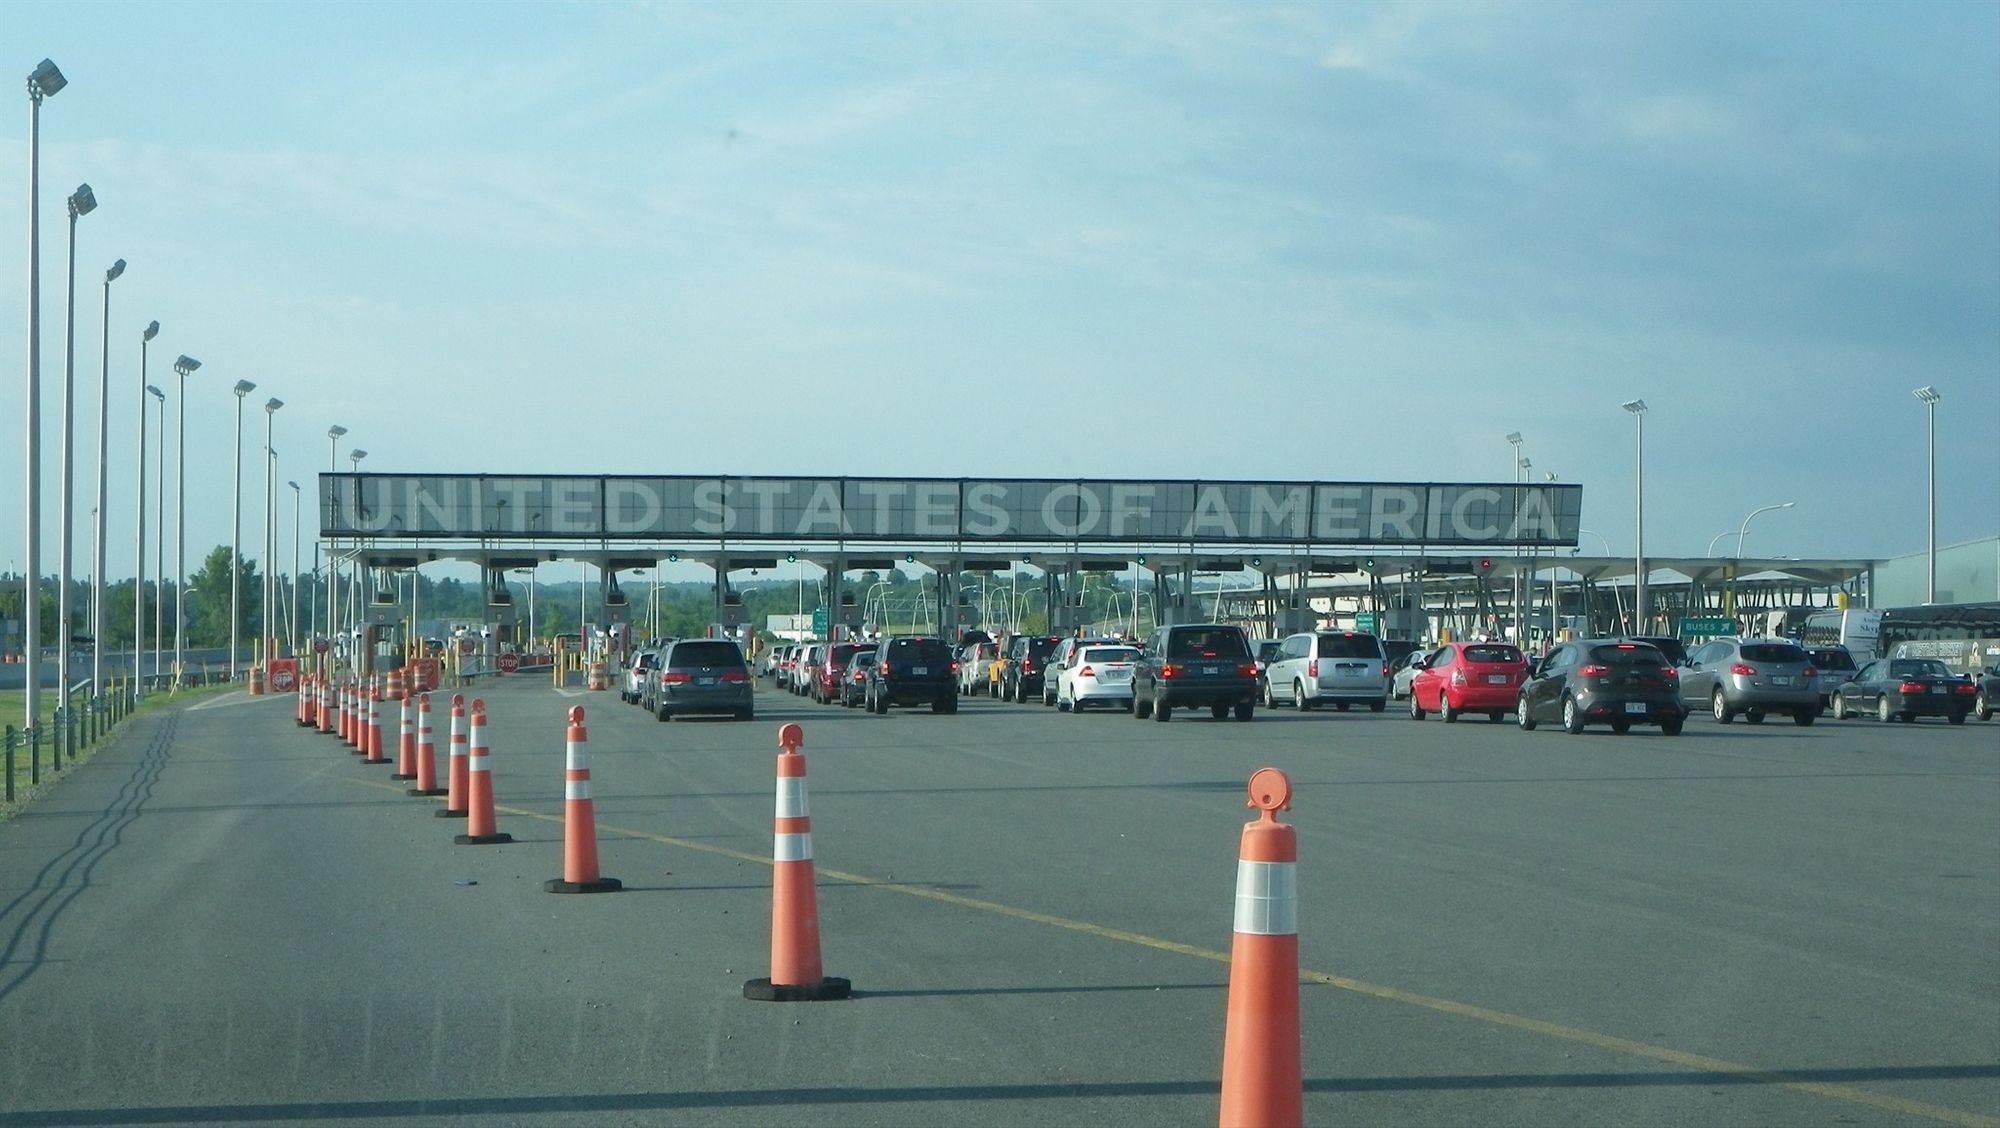 Bringing your Motorhome or Trailer over the Canadian/US border